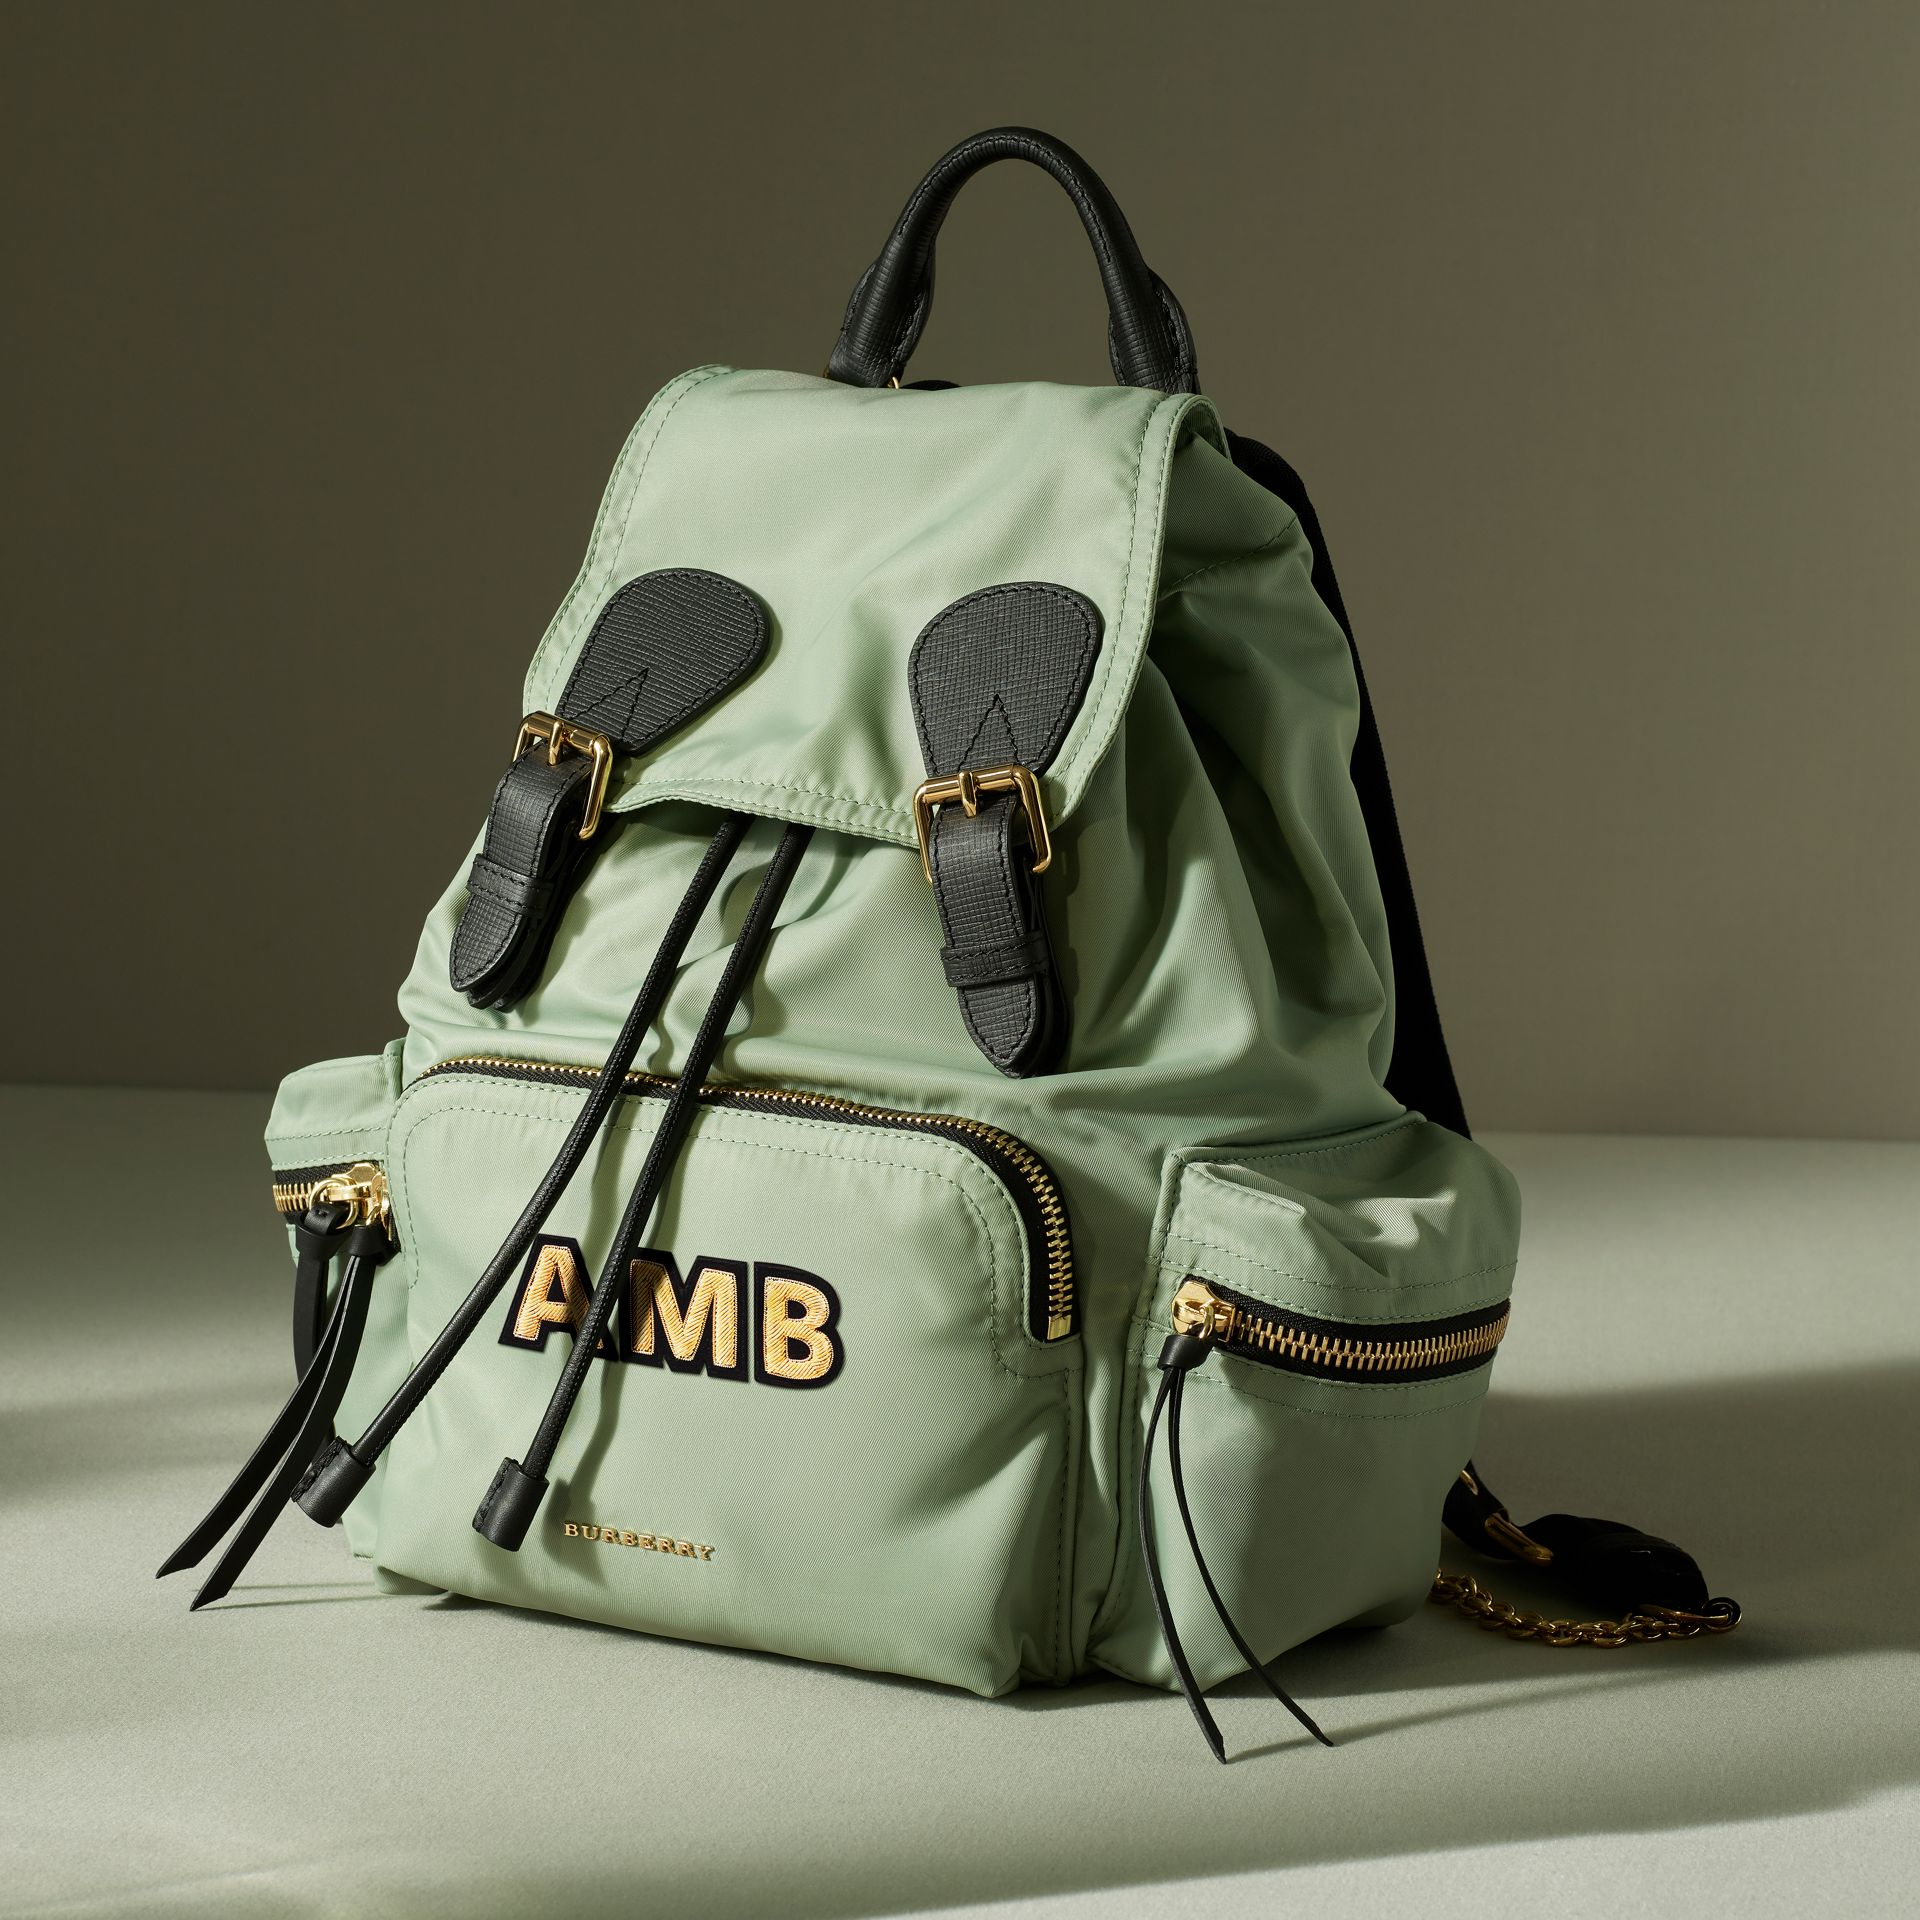 Sac The Rucksack medium en nylon technique et cuir (Vert Pomme) - Femme | Burberry - photo de la galerie 7